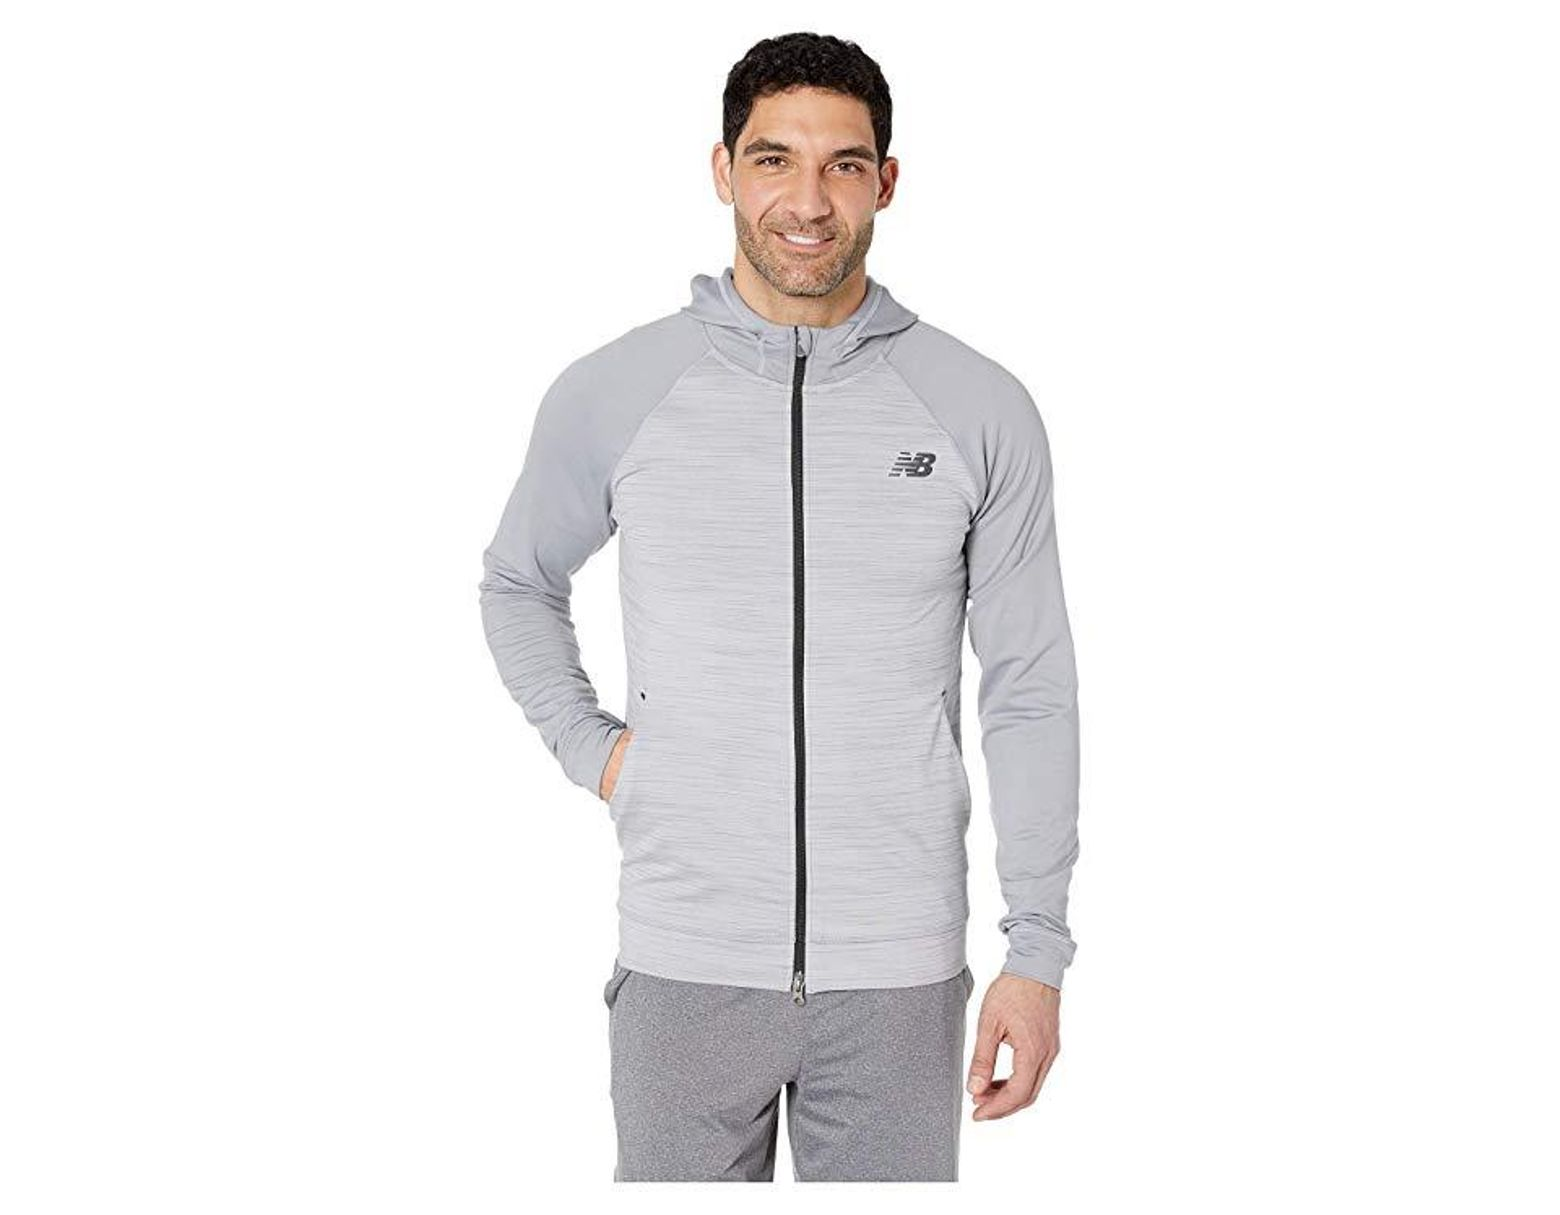 96d8d8f64b27b New Balance Anticipate 2.0 Jacket (athletic Grey) Coat in Gray for Men -  Save 2% - Lyst